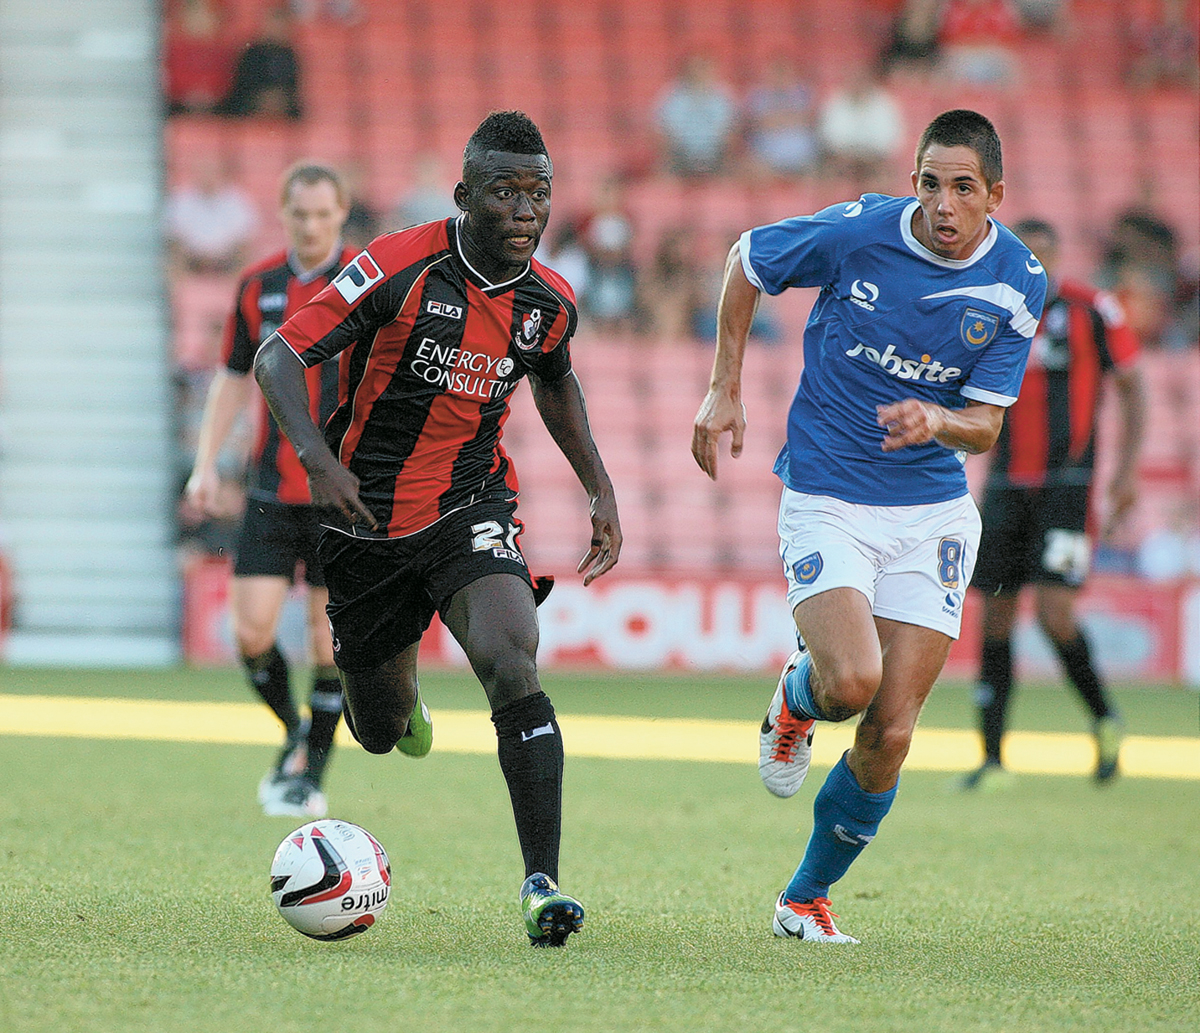 MAKING PROGRESS: AFC Bournemouth's Mohamed Coulibaly (left)